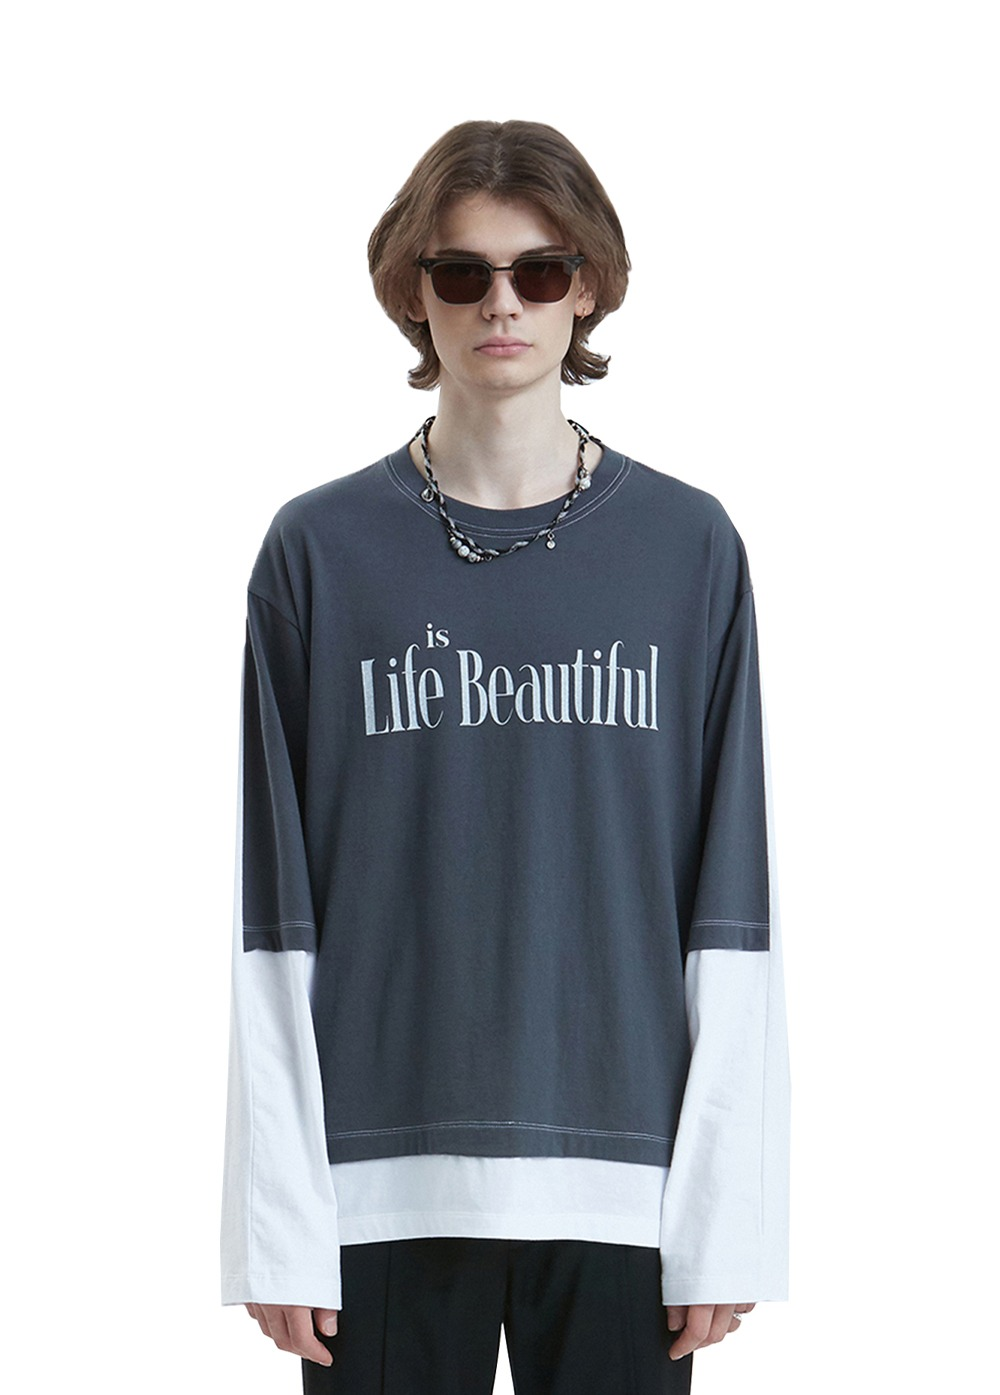 LIFUL SLOGAN LAYERED LONG SLEEVE TEE dark gray/white